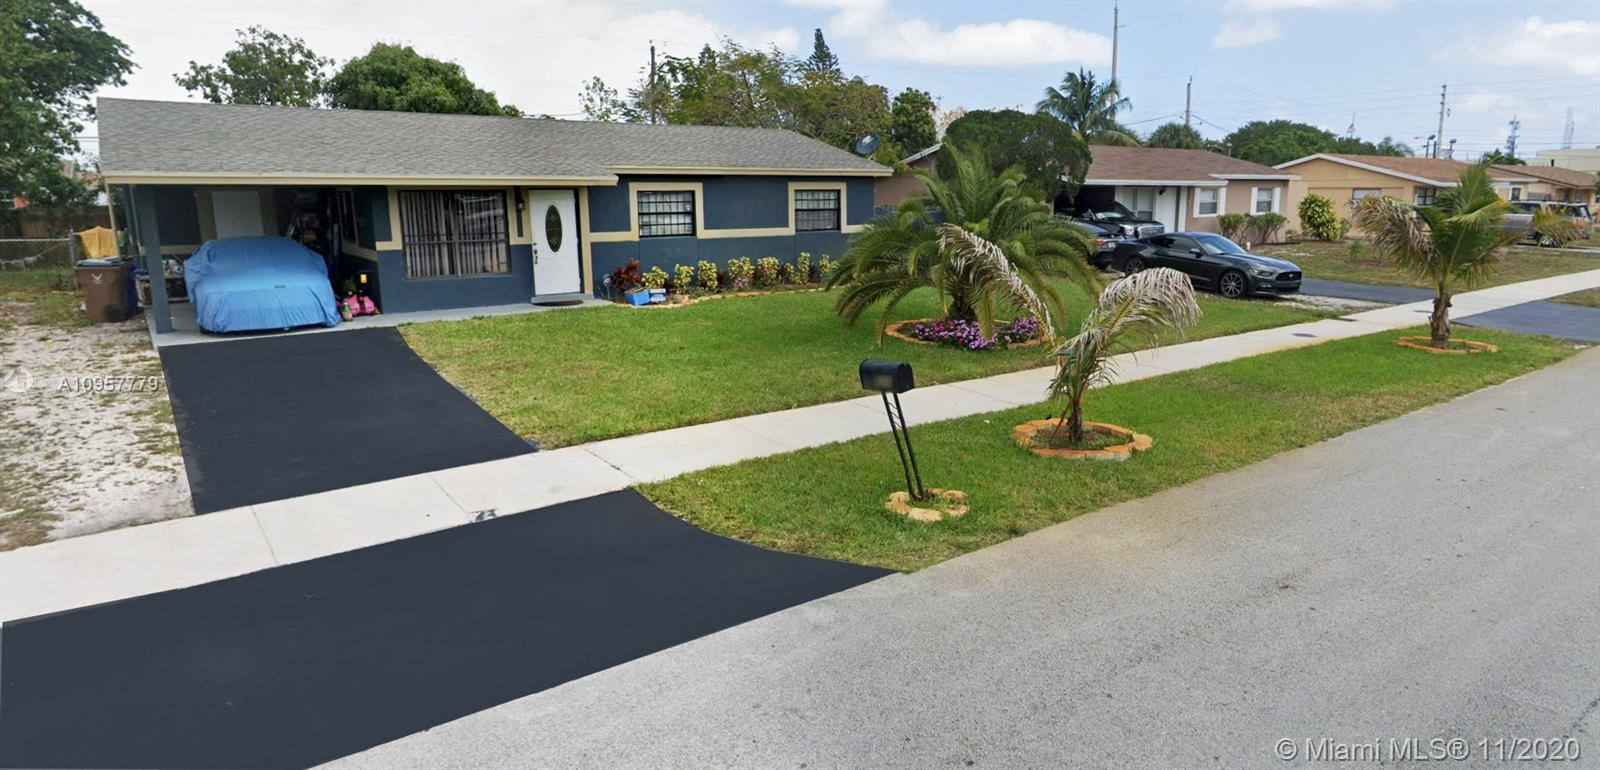 MARVELOUS SINGLE FAMILY HOME IN THE HEART OF DEERFIELD BEACH CLOSE TO MAJOR HIGHWAYS, SHOPS, BEACH,